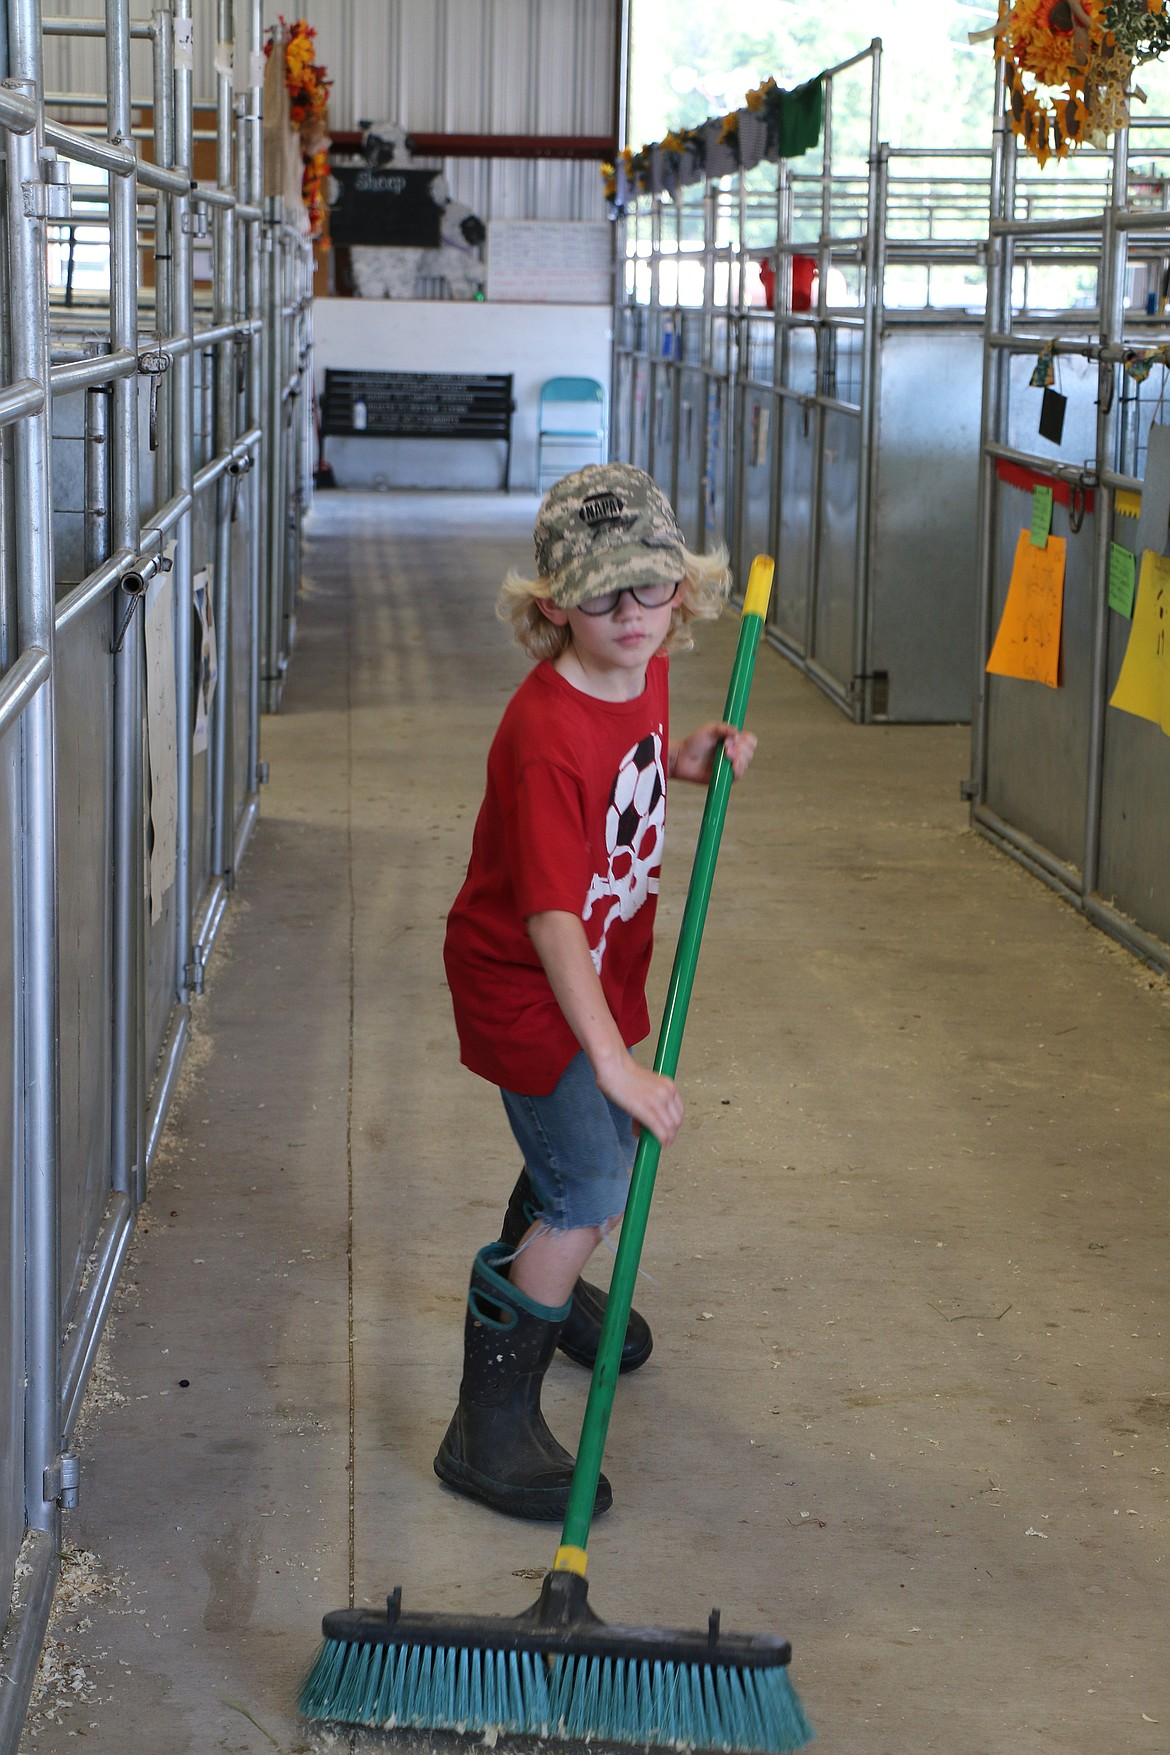 Cole Vanhorn, a member of the Gold 'n' Grouse 4-H Club, works to keep the sheep and goat barn clean at the Bonner County Fair last week.